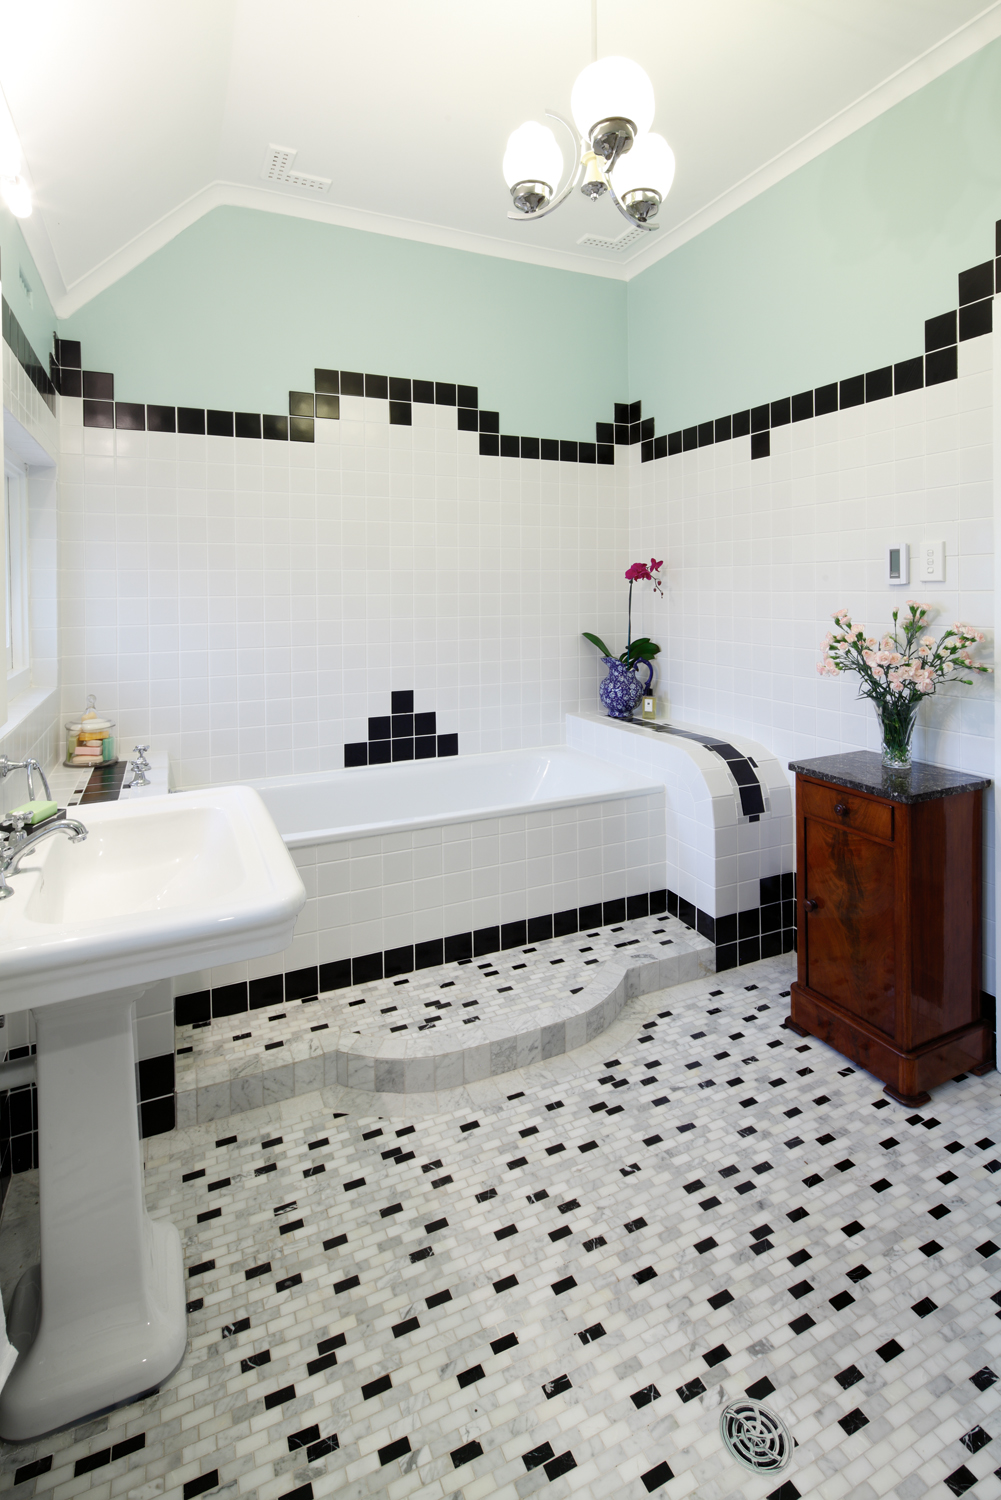 Real bathroom: Geometric class